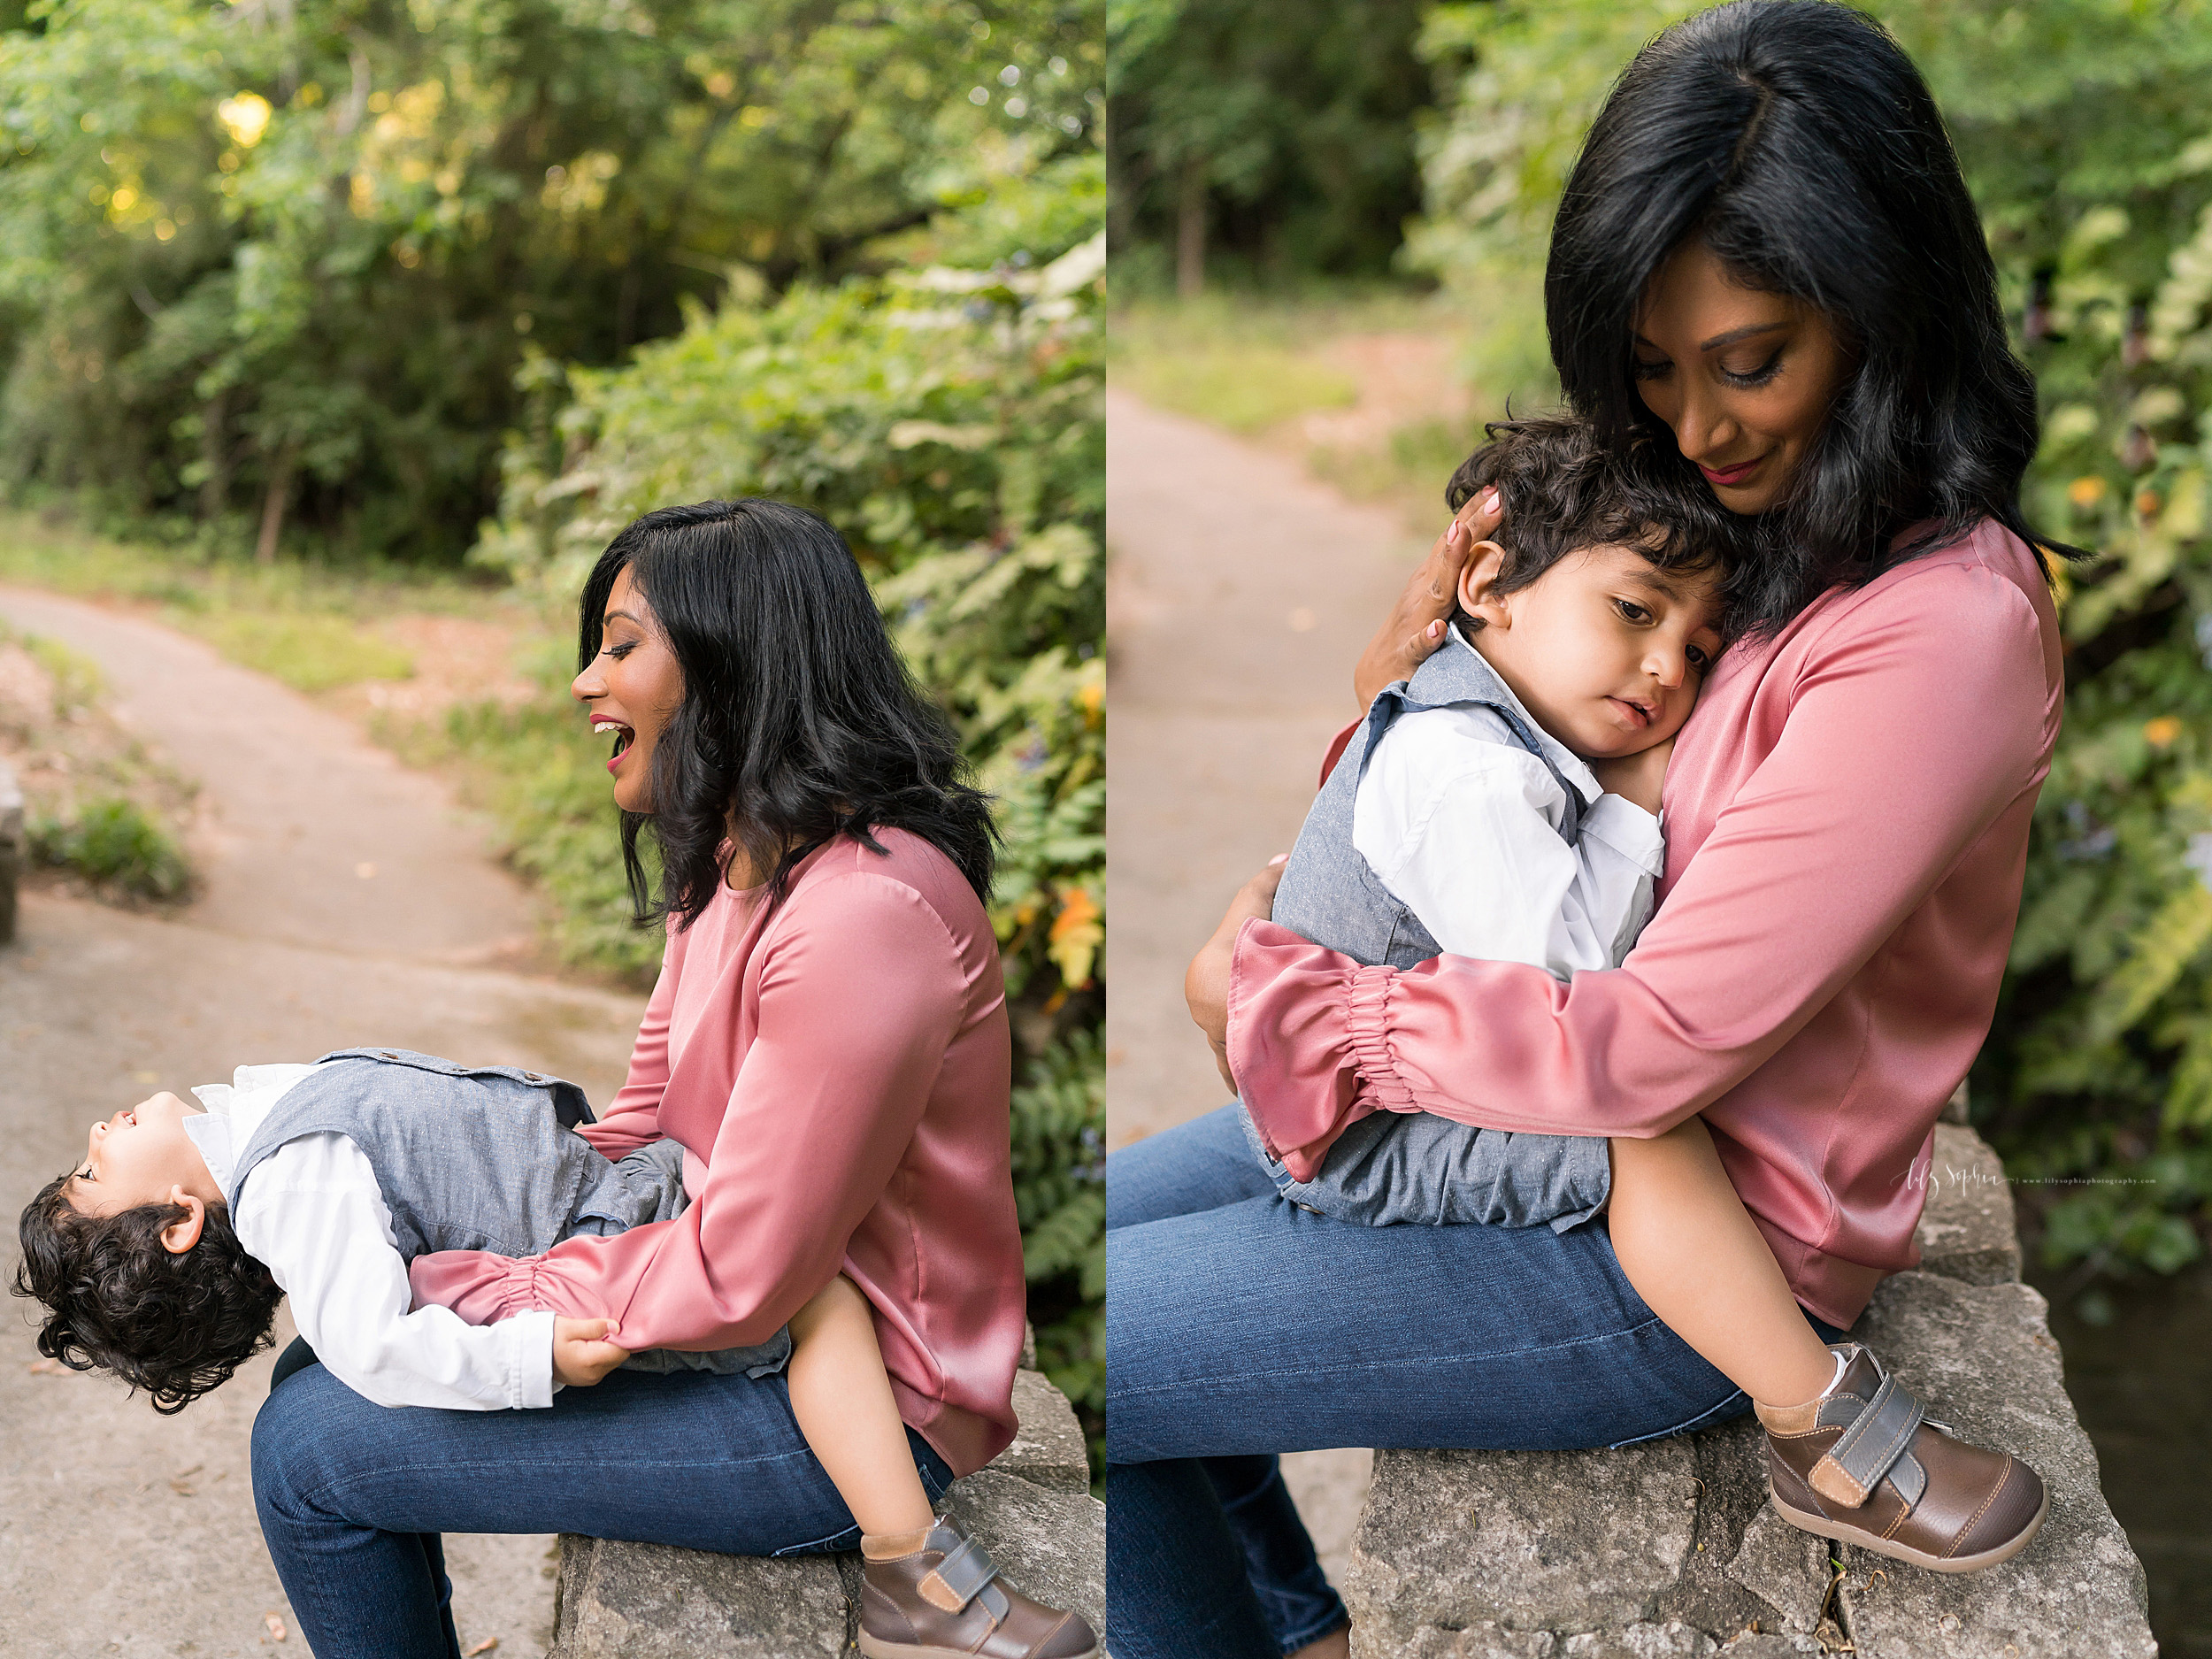 Split image of an Indian mom and her son sitting on a bench in a garden in Atlanta.  In the first image the little boy and mom are playing as the son leans backward on his mom's lap.  In the second image the little boy is snuggling with his mom as she holds him against her chest.